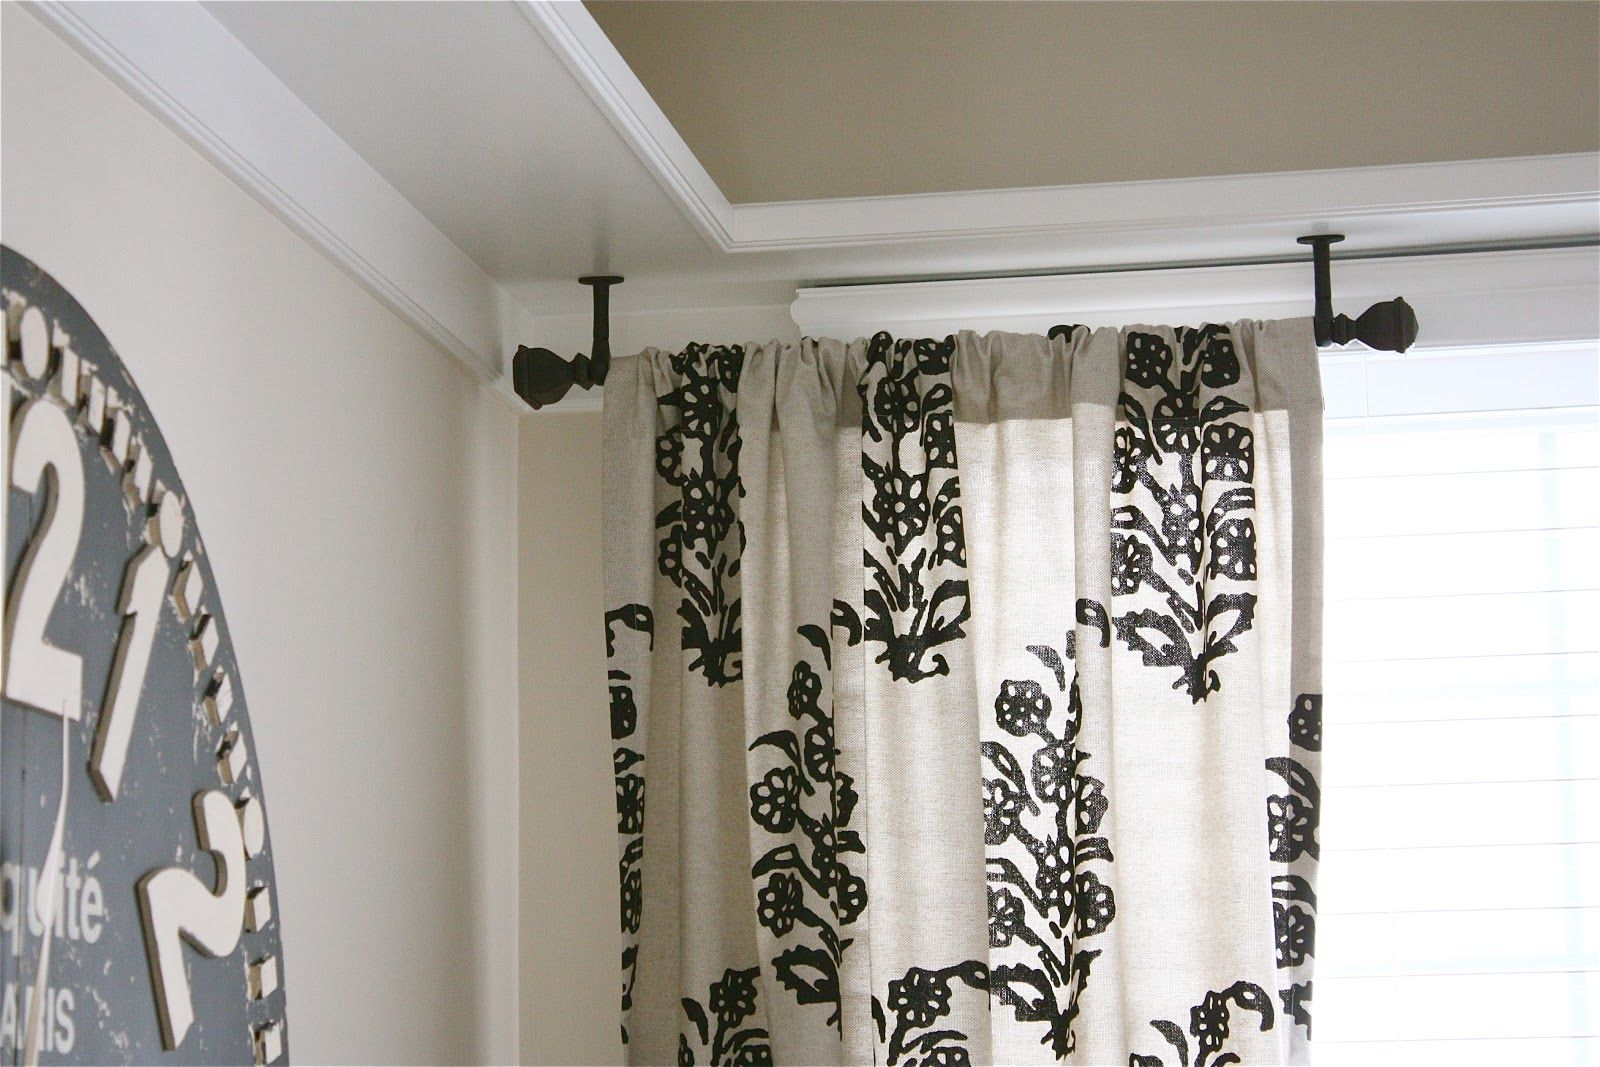 Hanging curtains partial rods and visual flow effective partial black ceiling rod